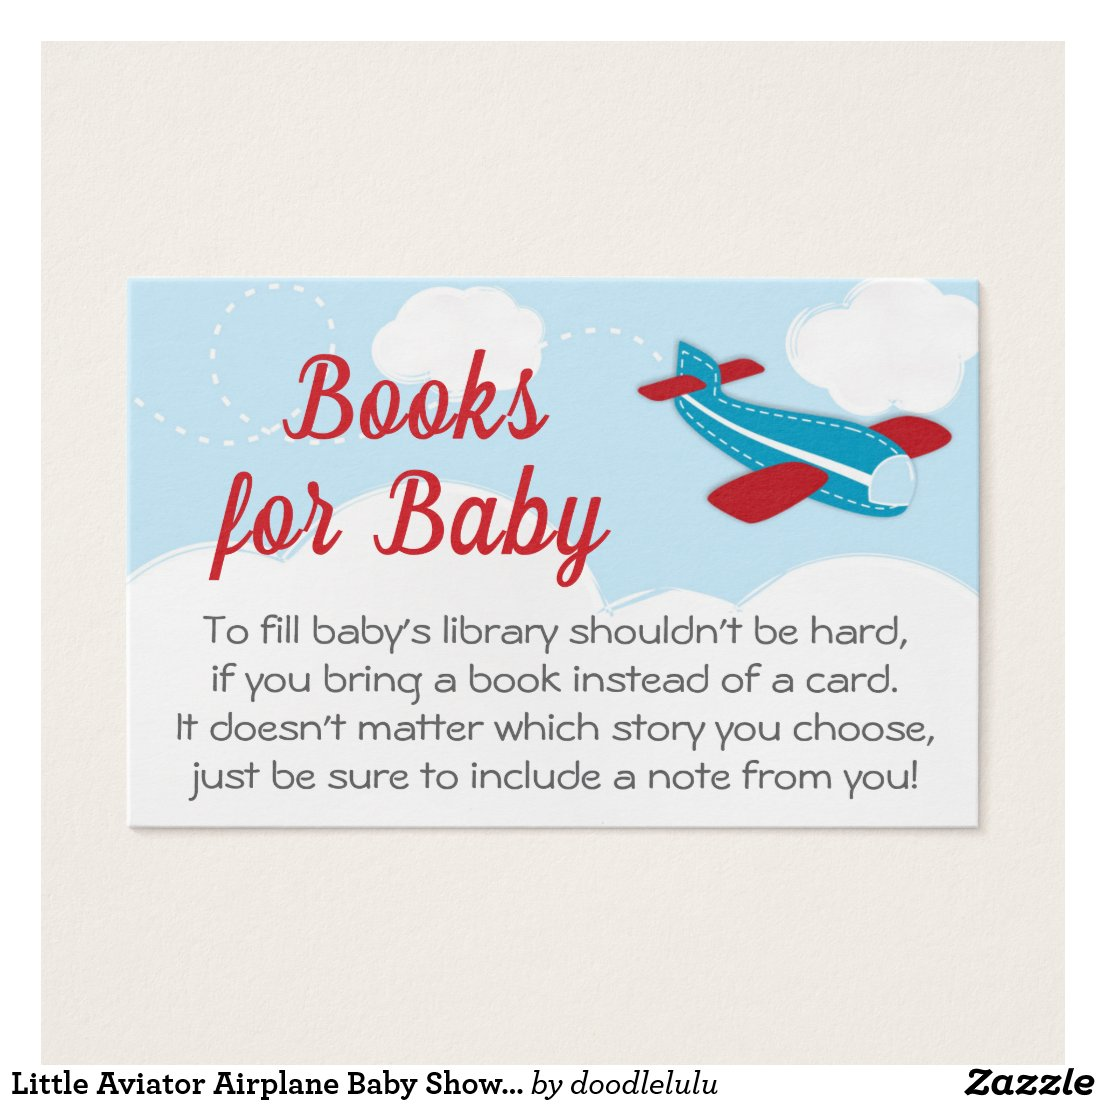 Little Aviator Airplane Baby Shower Book Request